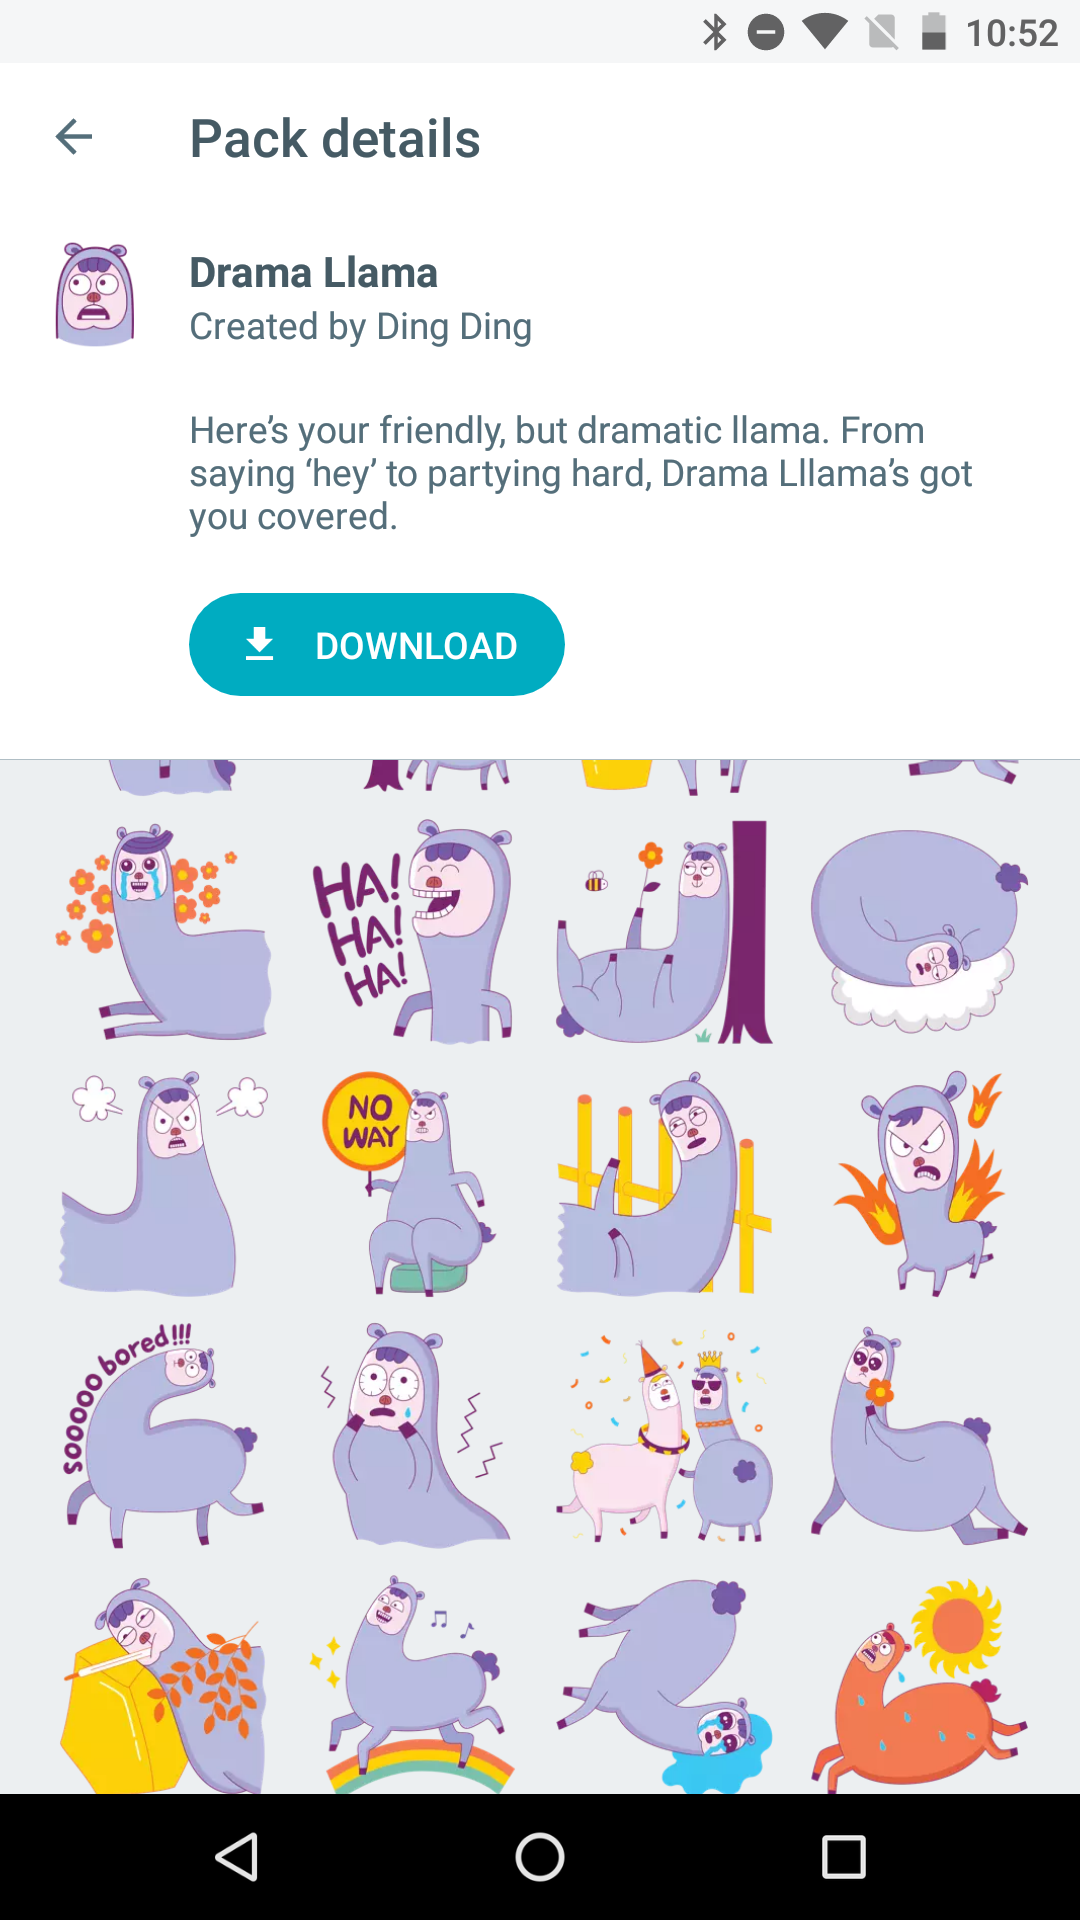 google-allo-sticker-packs-drama-llama